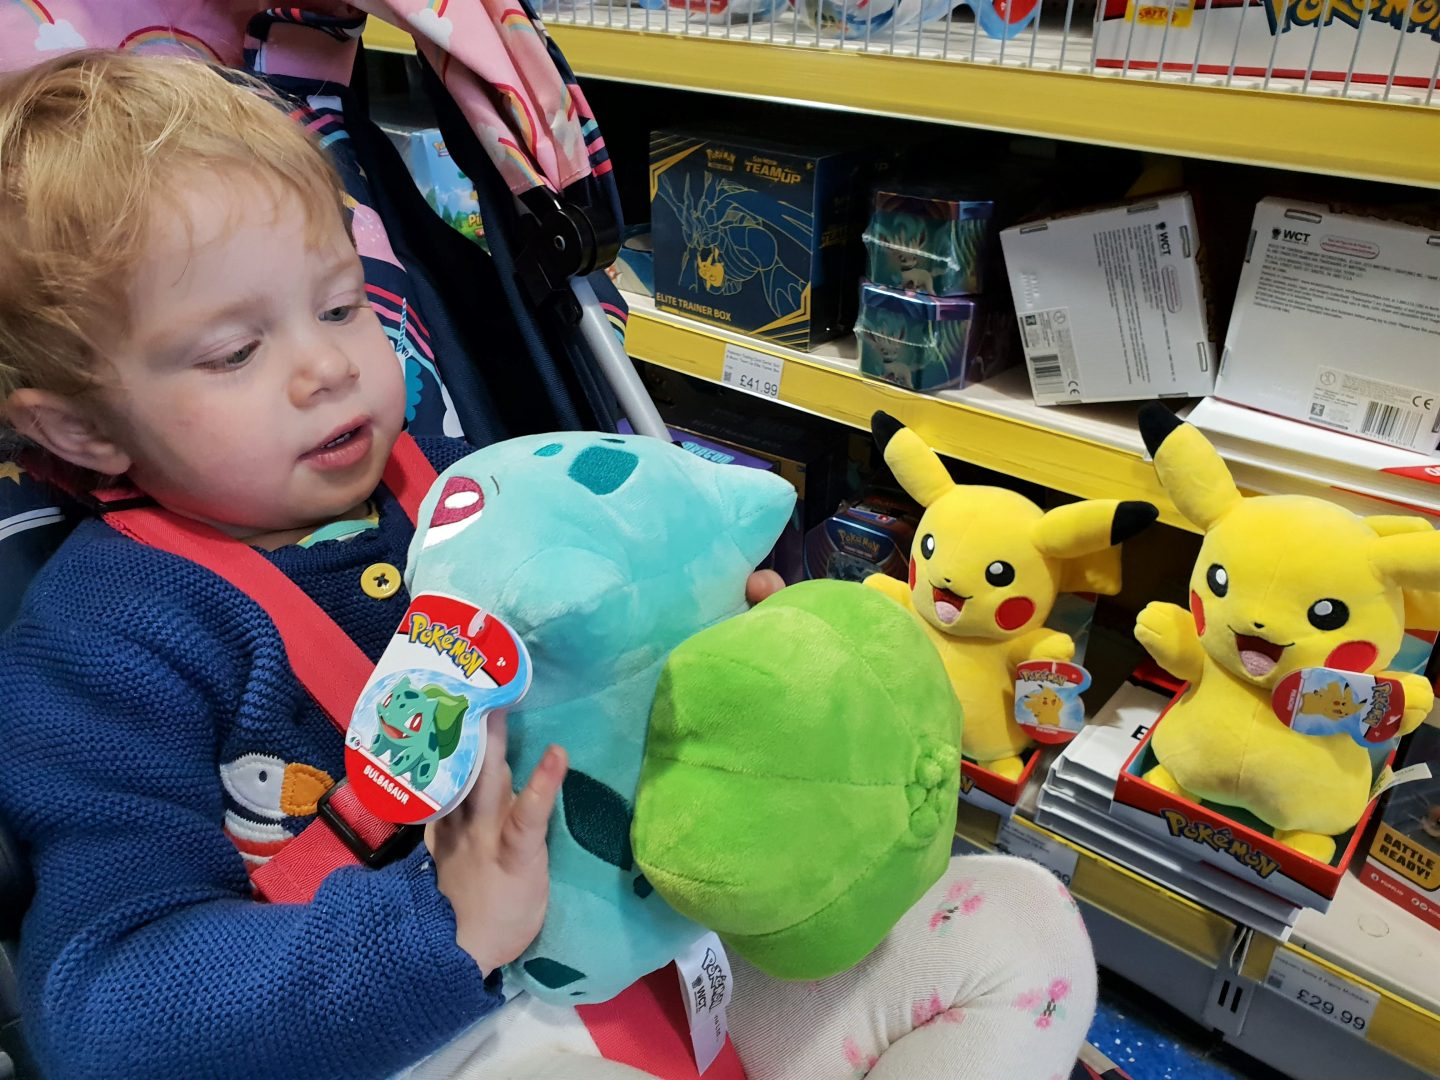 Toddler choosing Bulbasaur Pokemon toy at Smyths Toys, South Aylesford Retail Park as Pikachu looks on